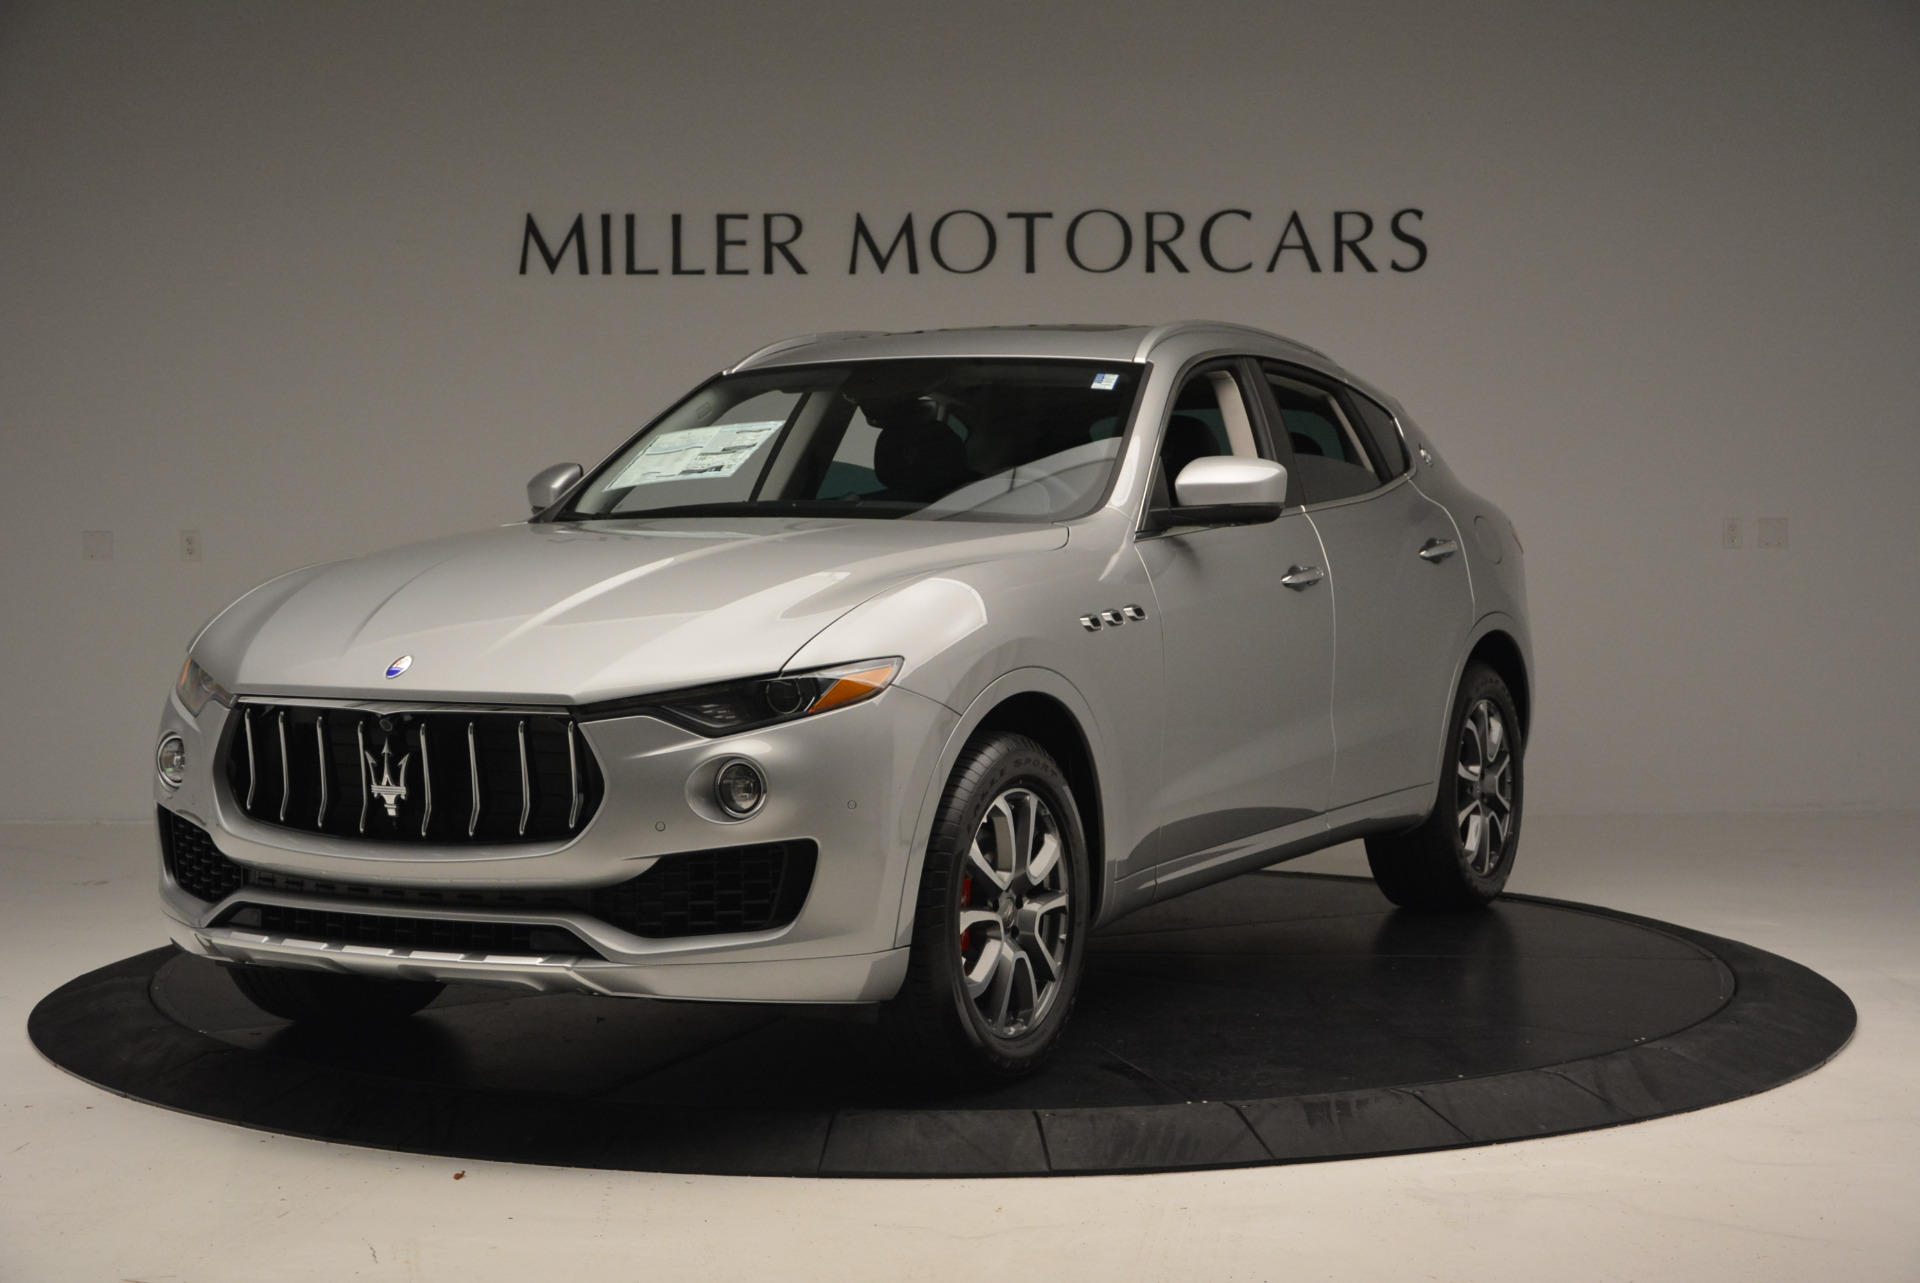 New 2017 Maserati Levante 350hp for sale Sold at Bentley Greenwich in Greenwich CT 06830 1